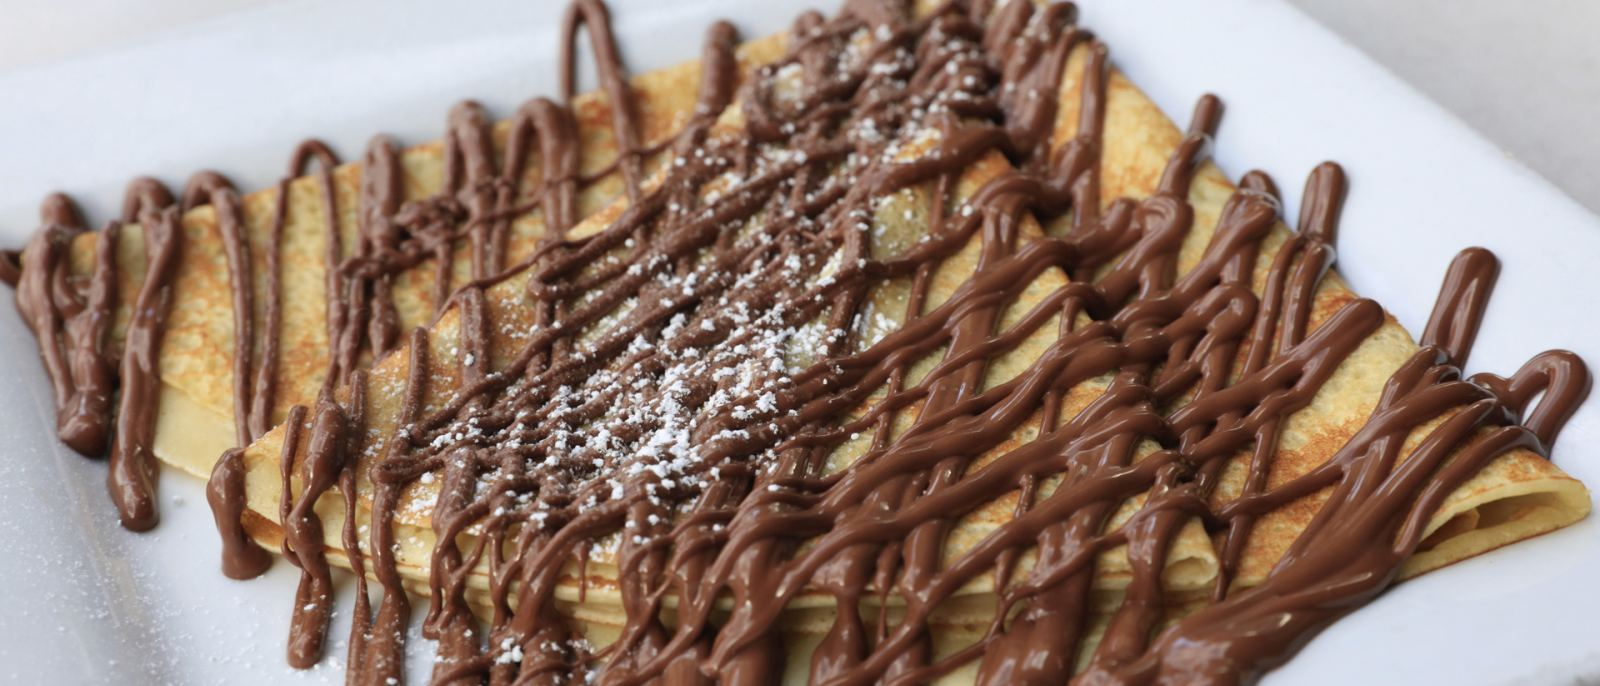 Nutella Crepe at Crave Cafe in Studio City